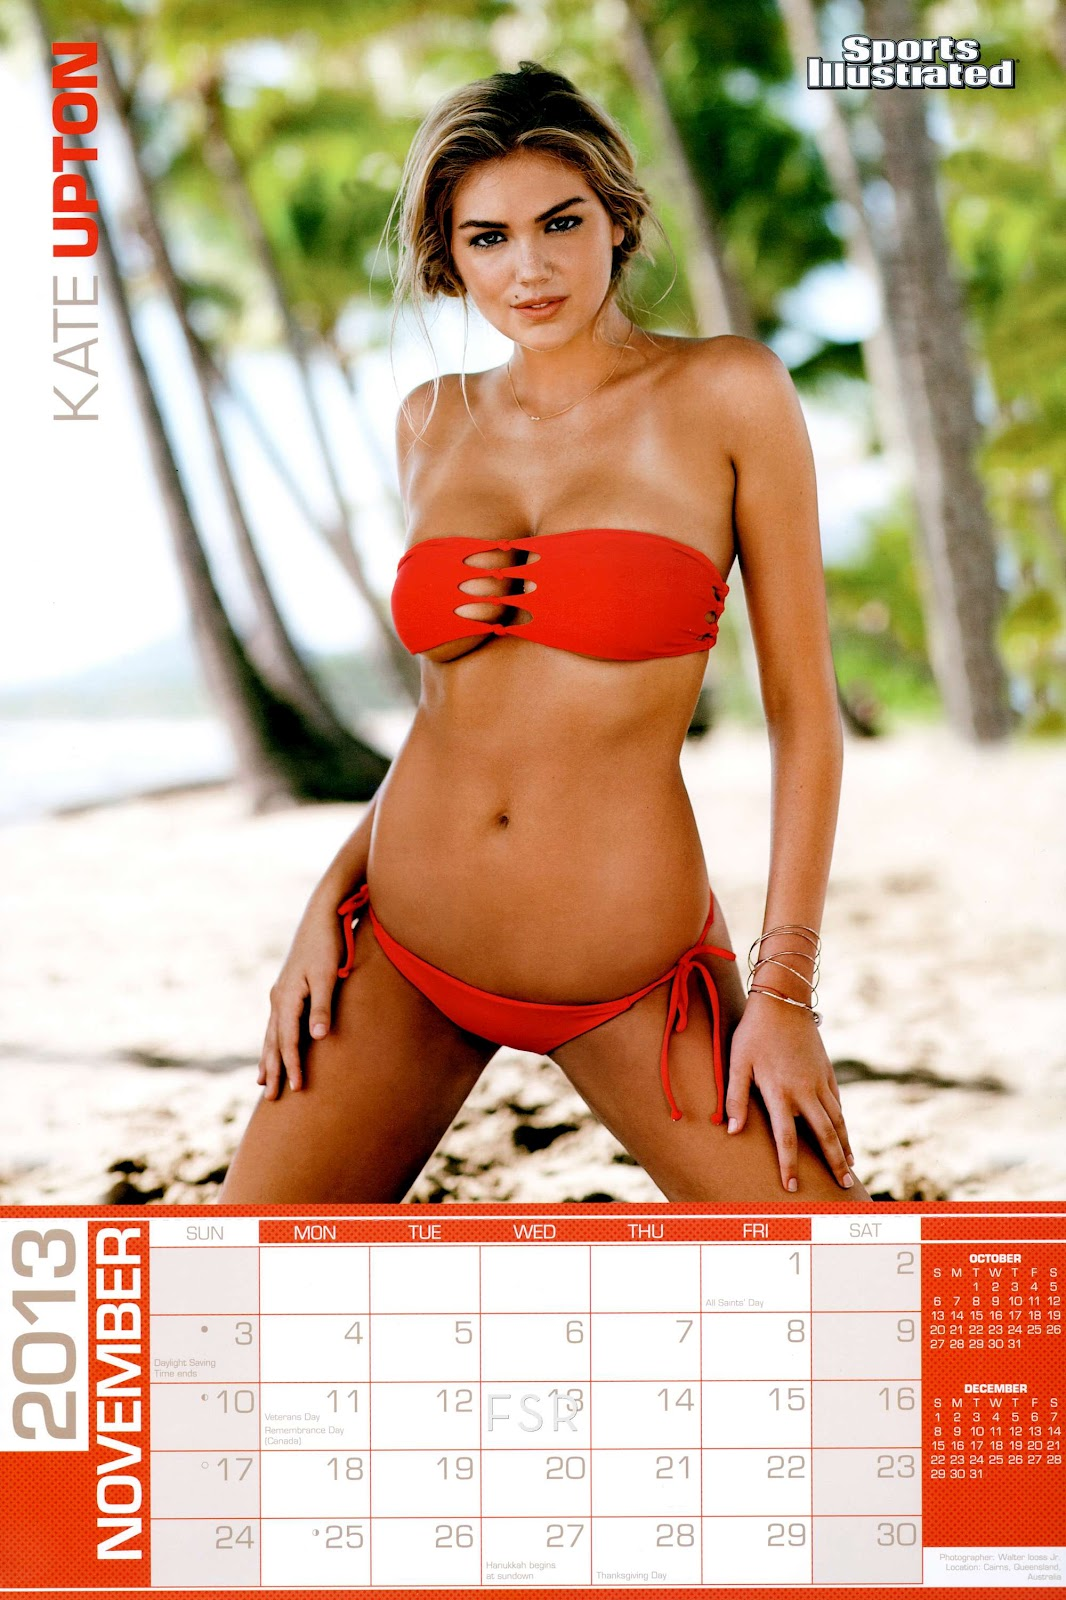 Kate Bilo Hot http://www.sabhot.com/2012/09/irina-shayk-kate-upton-on-2013-sports.html